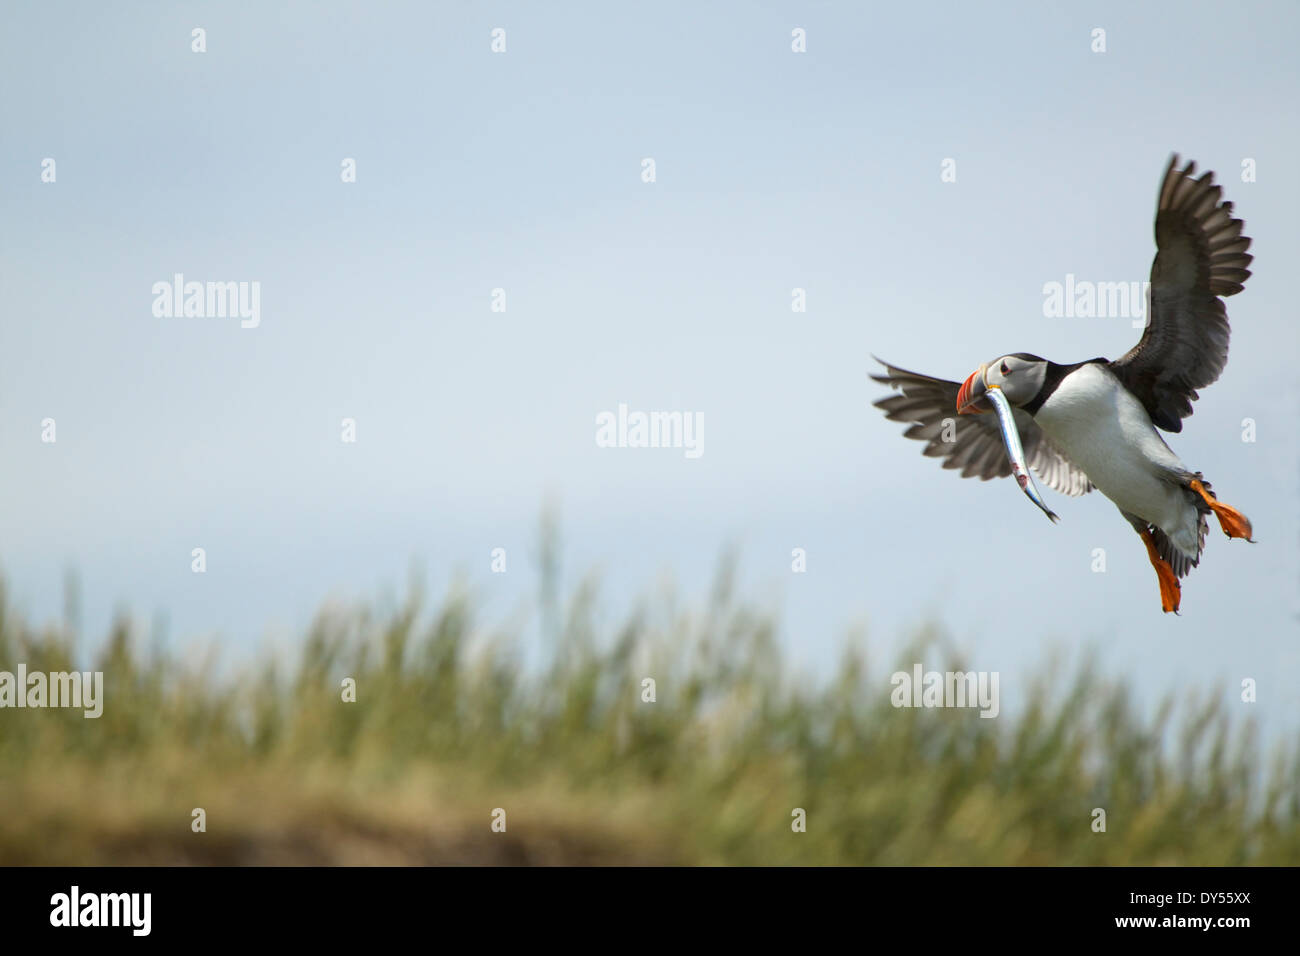 Atlantic Puffin in flight with fish in mouth, Farne Islands, Northumberland, England - Stock Image